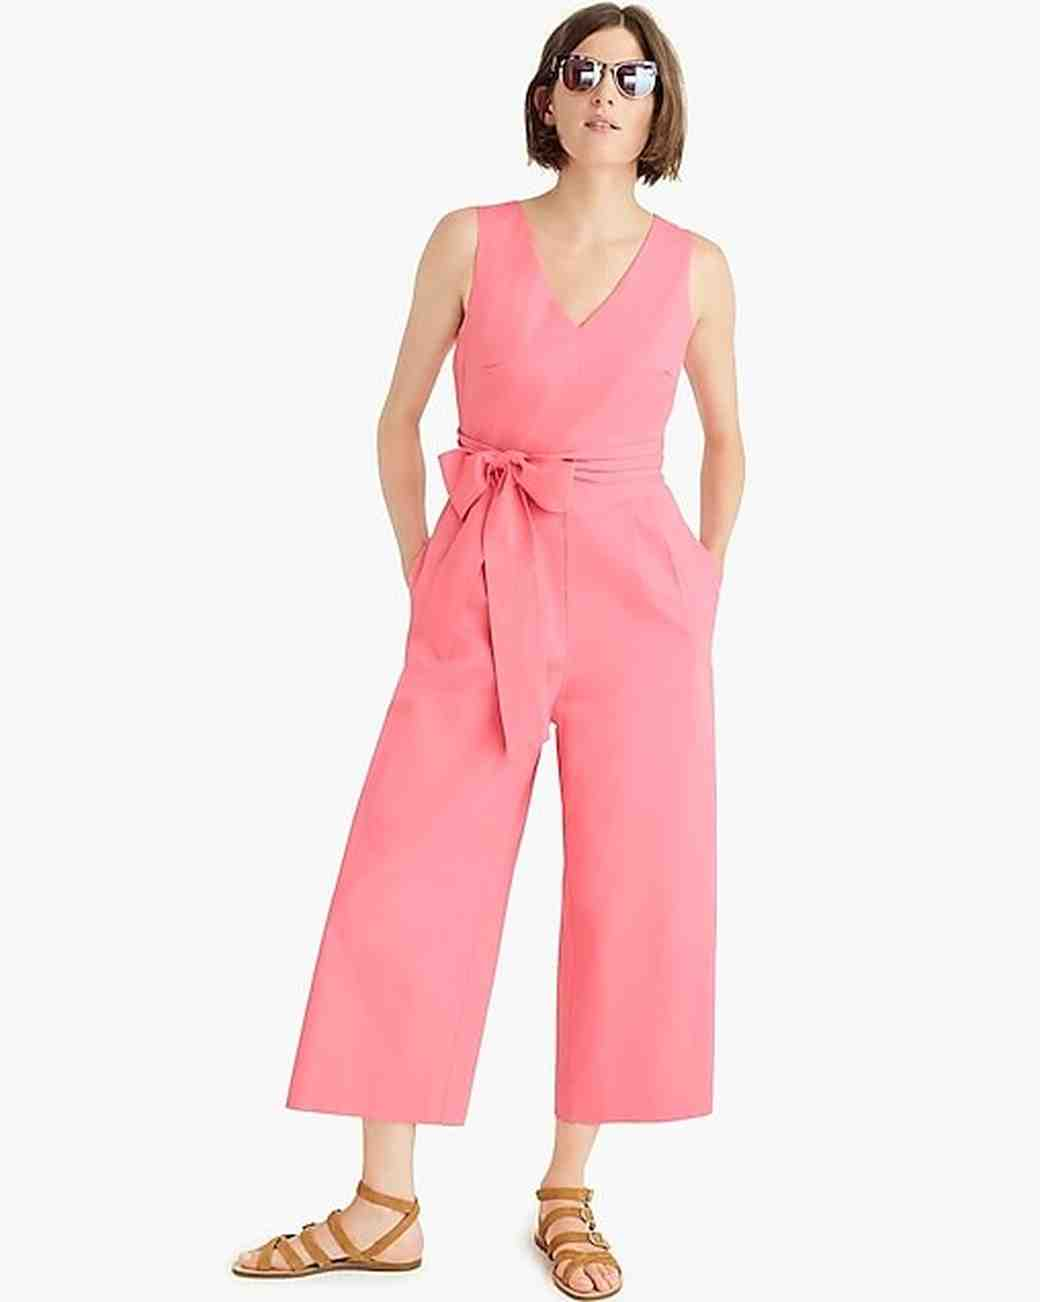 b66517b102a 15 Chic Bridesmaid Jumpsuits